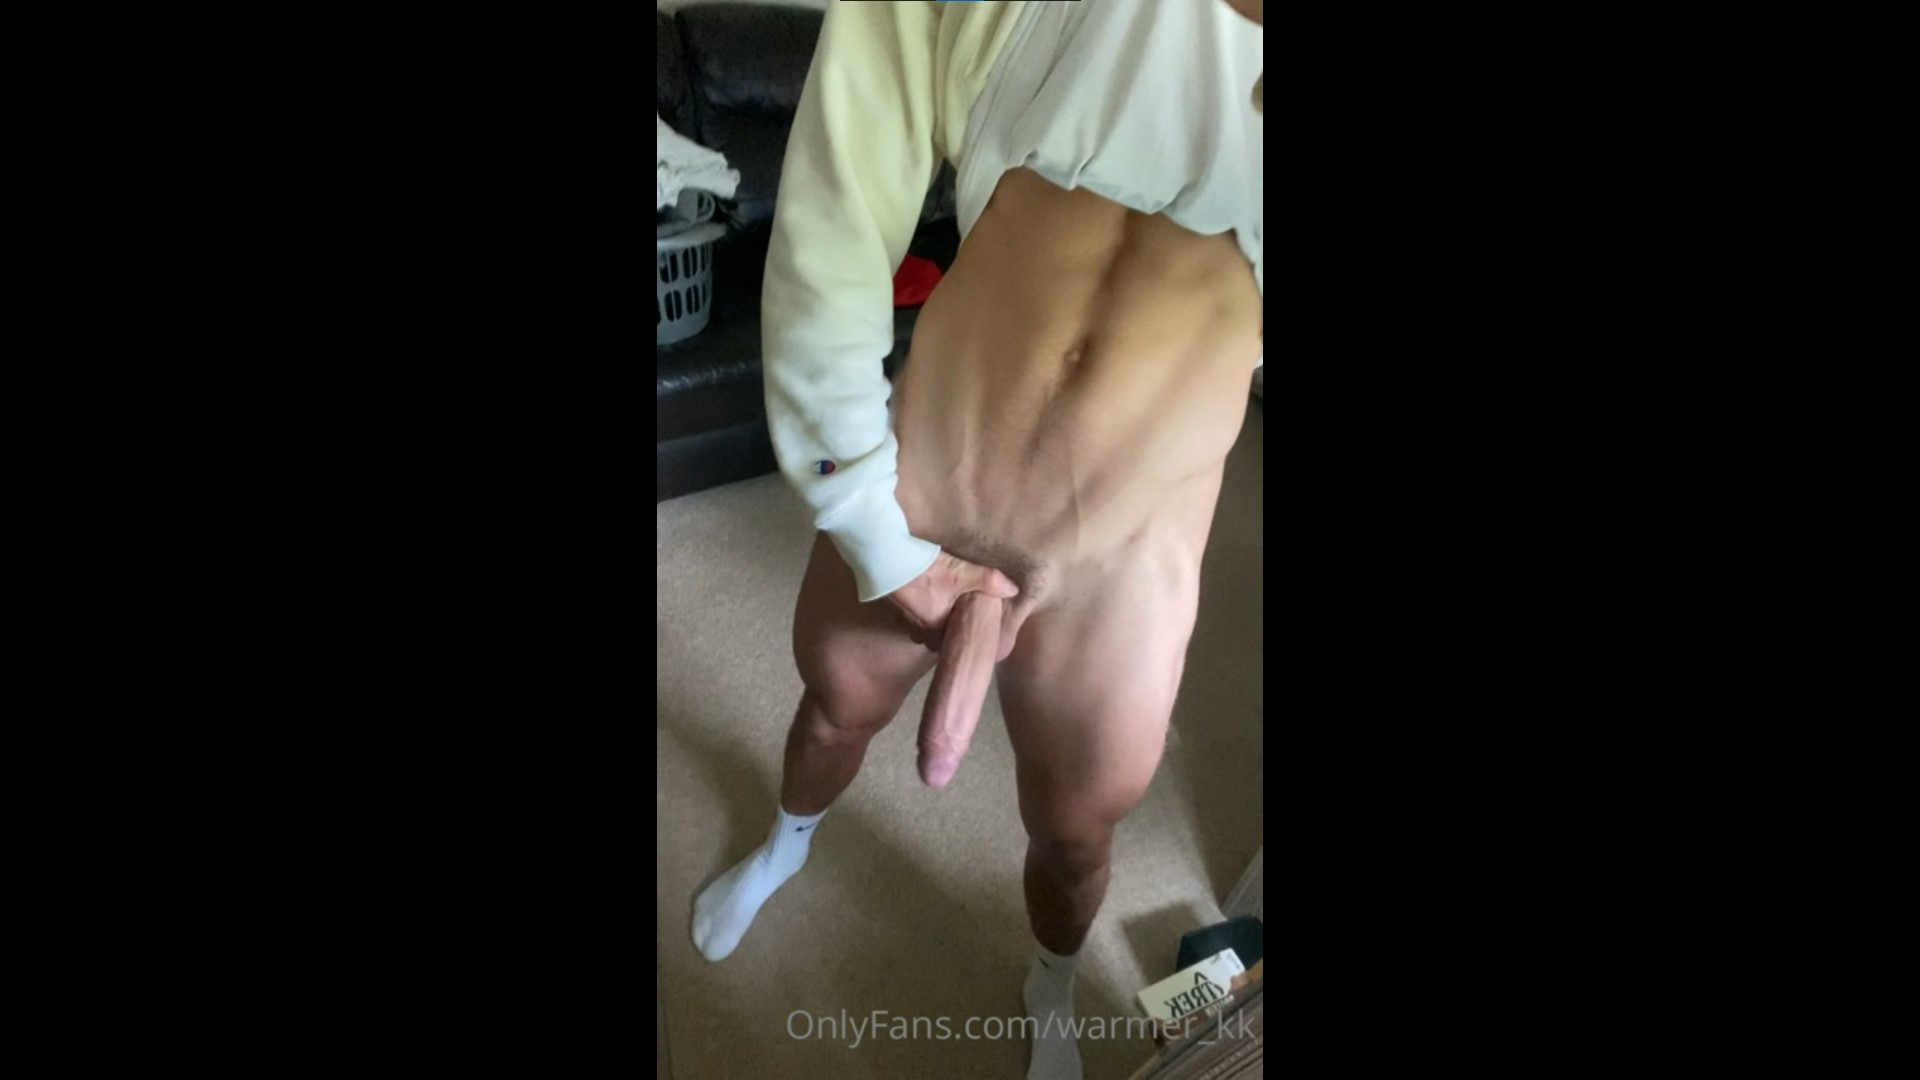 Showing off my big cock - Kieran Warner (warmer_kk)